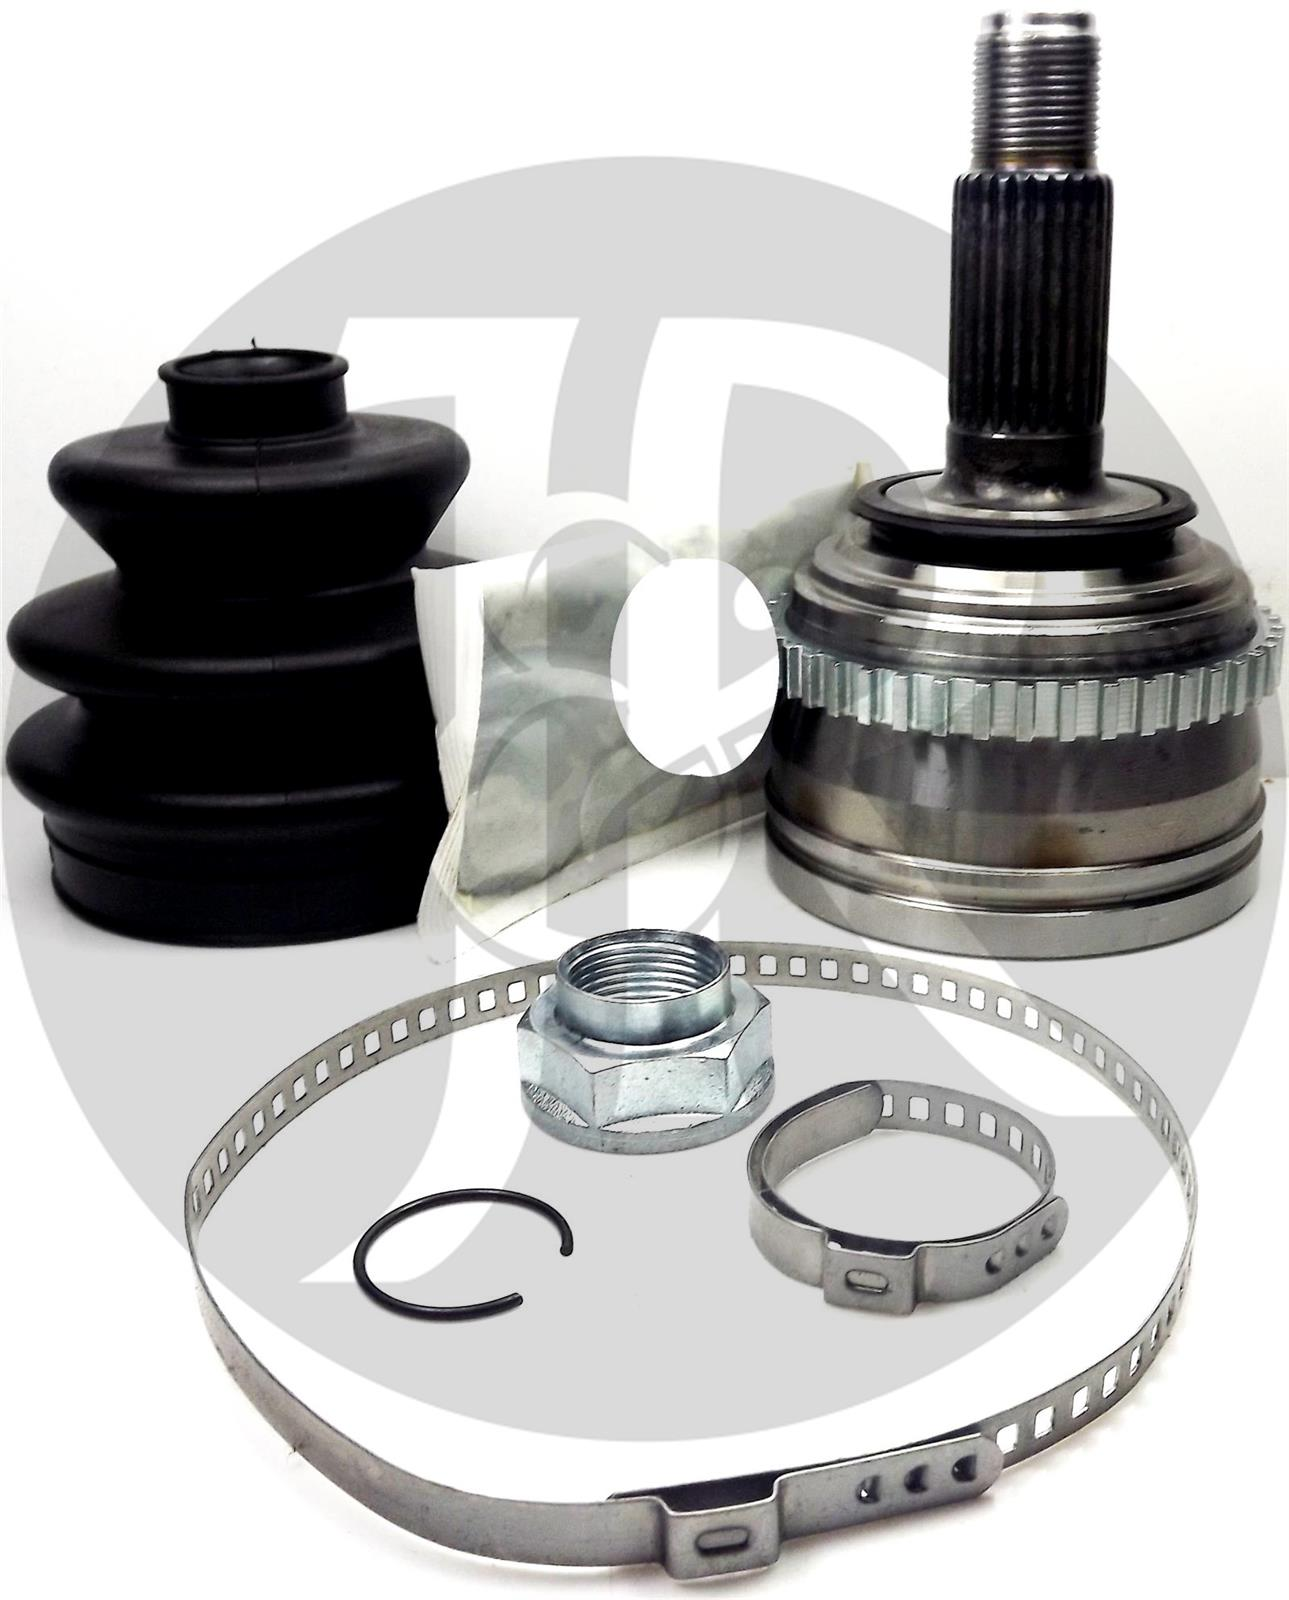 MG-ZS-MGZS ABS RING-ABS RELUCTOR RING-DRIVESHAFT ABS RING-CV JOINT ABS RING